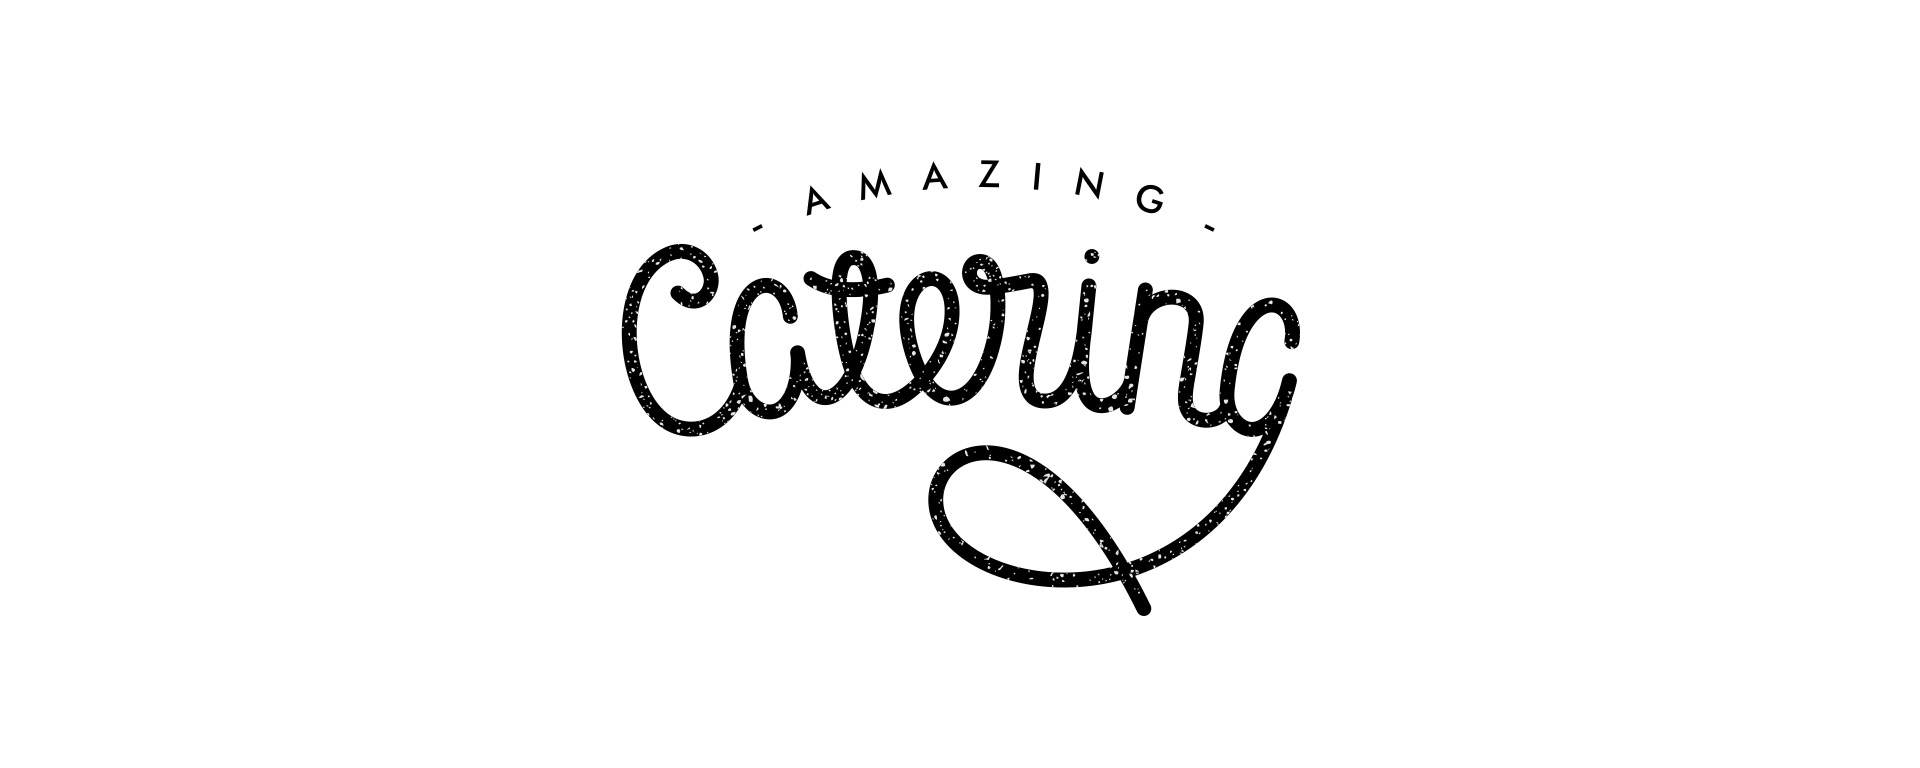 Amazing-catering-white-style-lettering-logotype